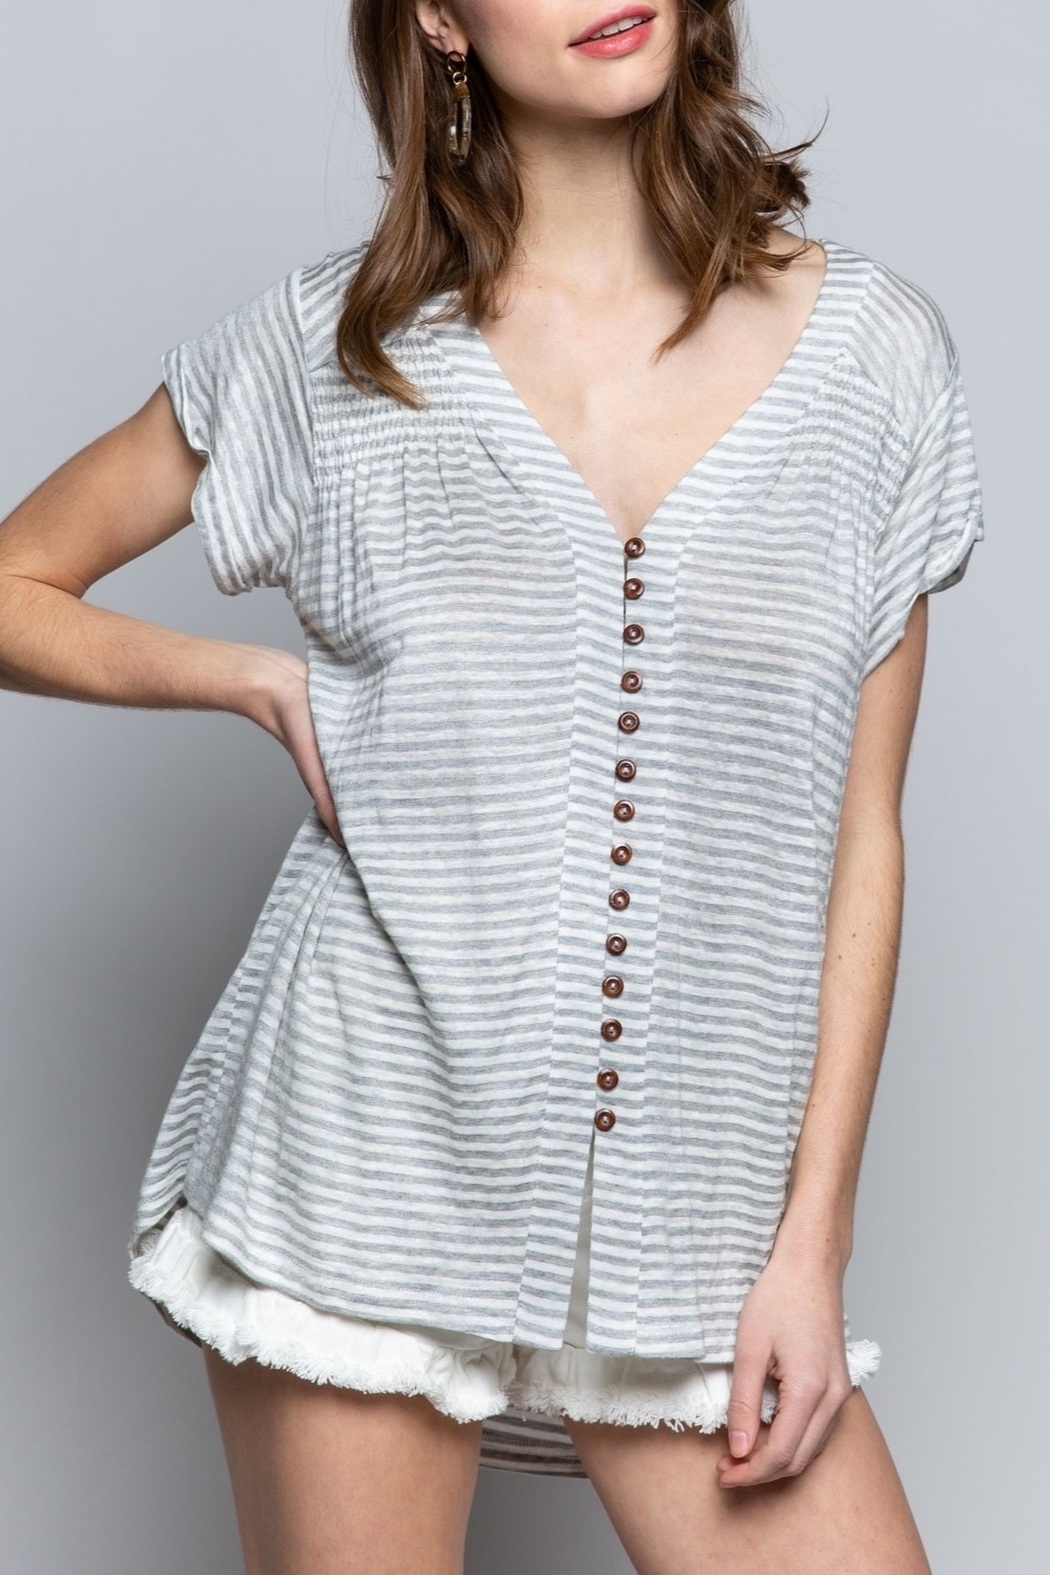 Pol Clothing Striped Button Shirt - Main Image